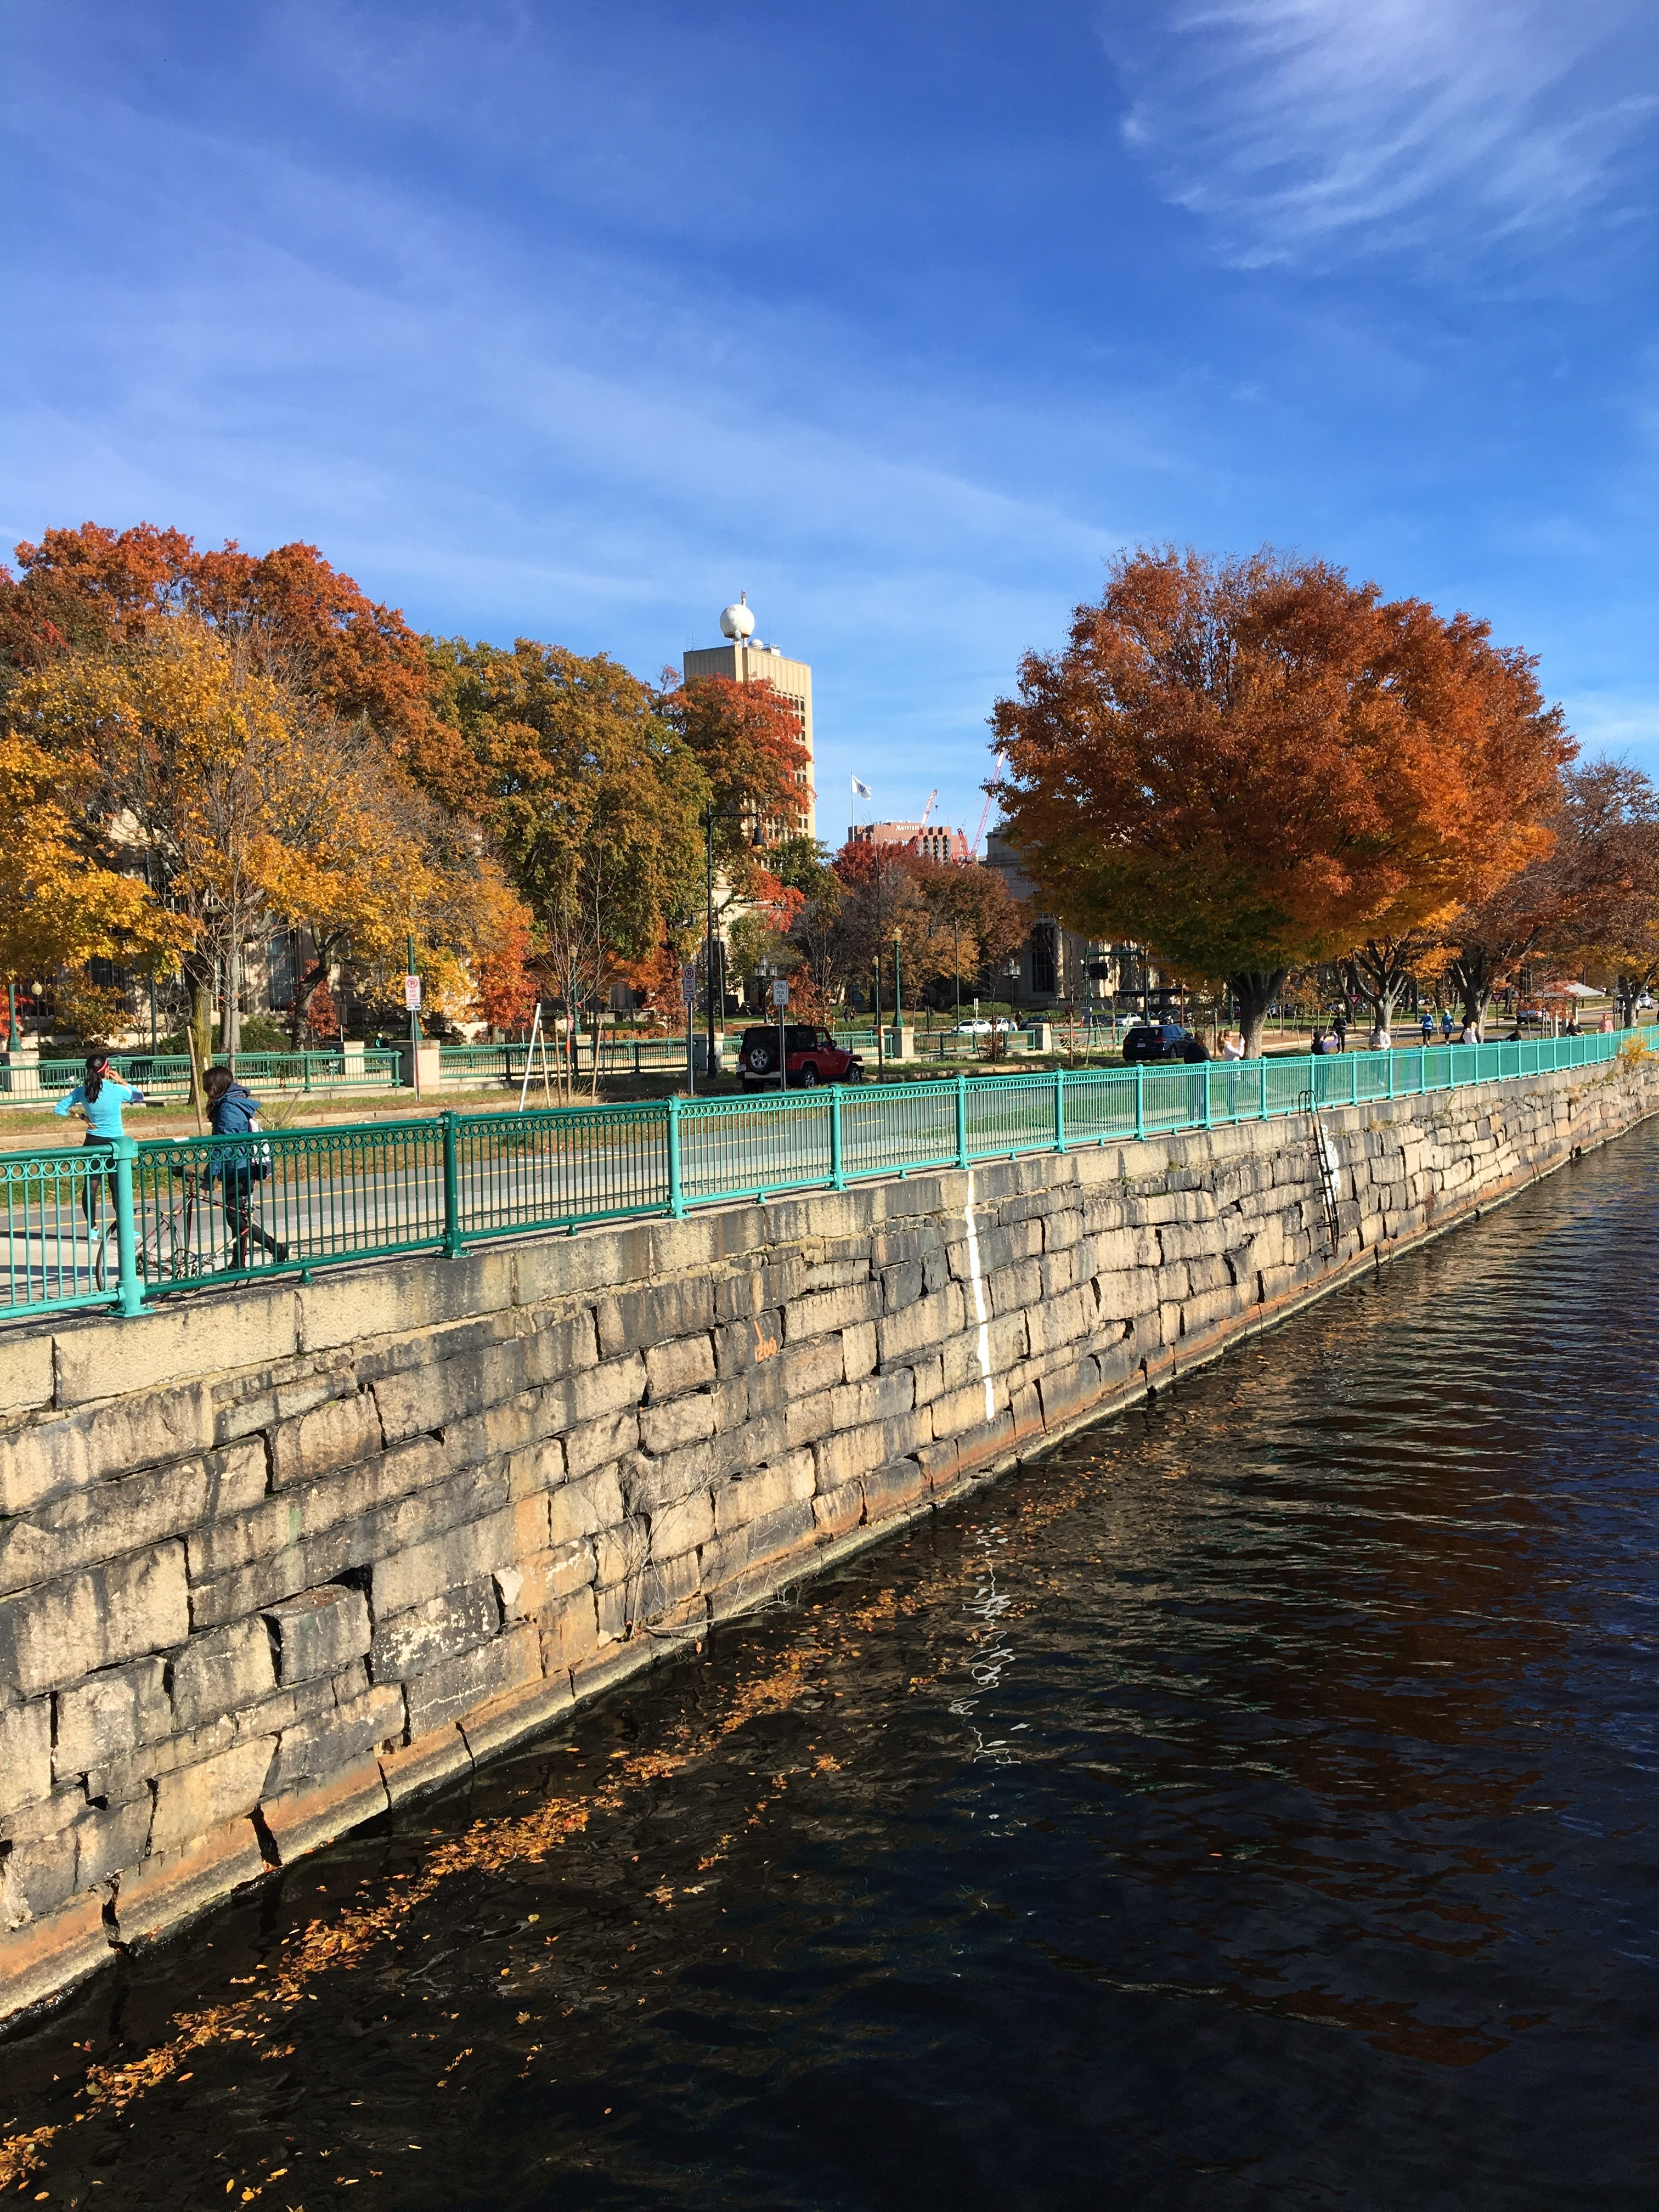 """A view right from the end of the """"Harvard"""" Bridge; the stone riverbank and teal railing are in the foreground, with dark orange trees behind them."""